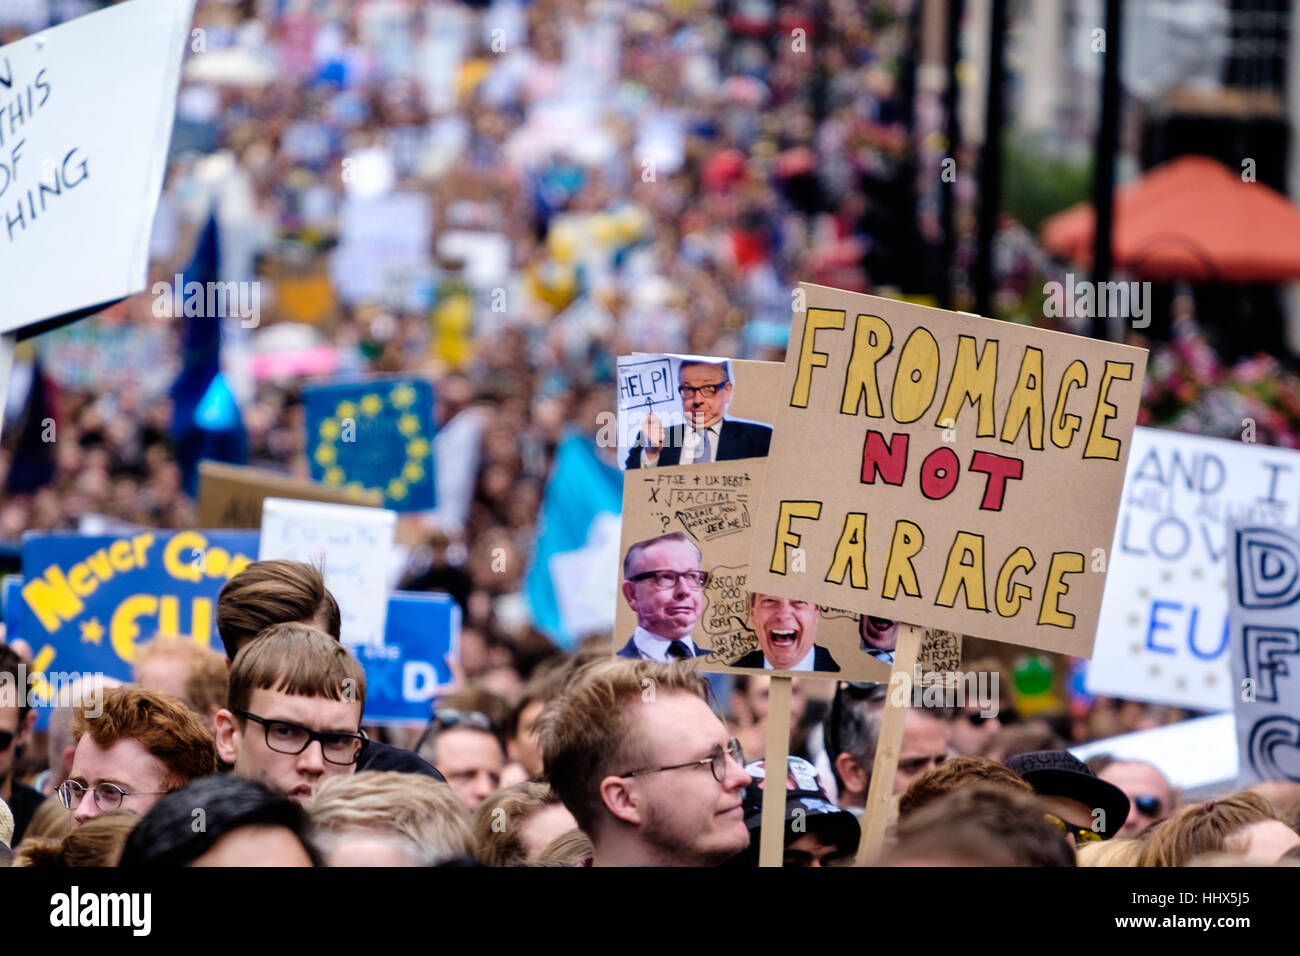 Fromage not Farage protest sign leads sea of demonstrators at the March for Europe - Stock Image